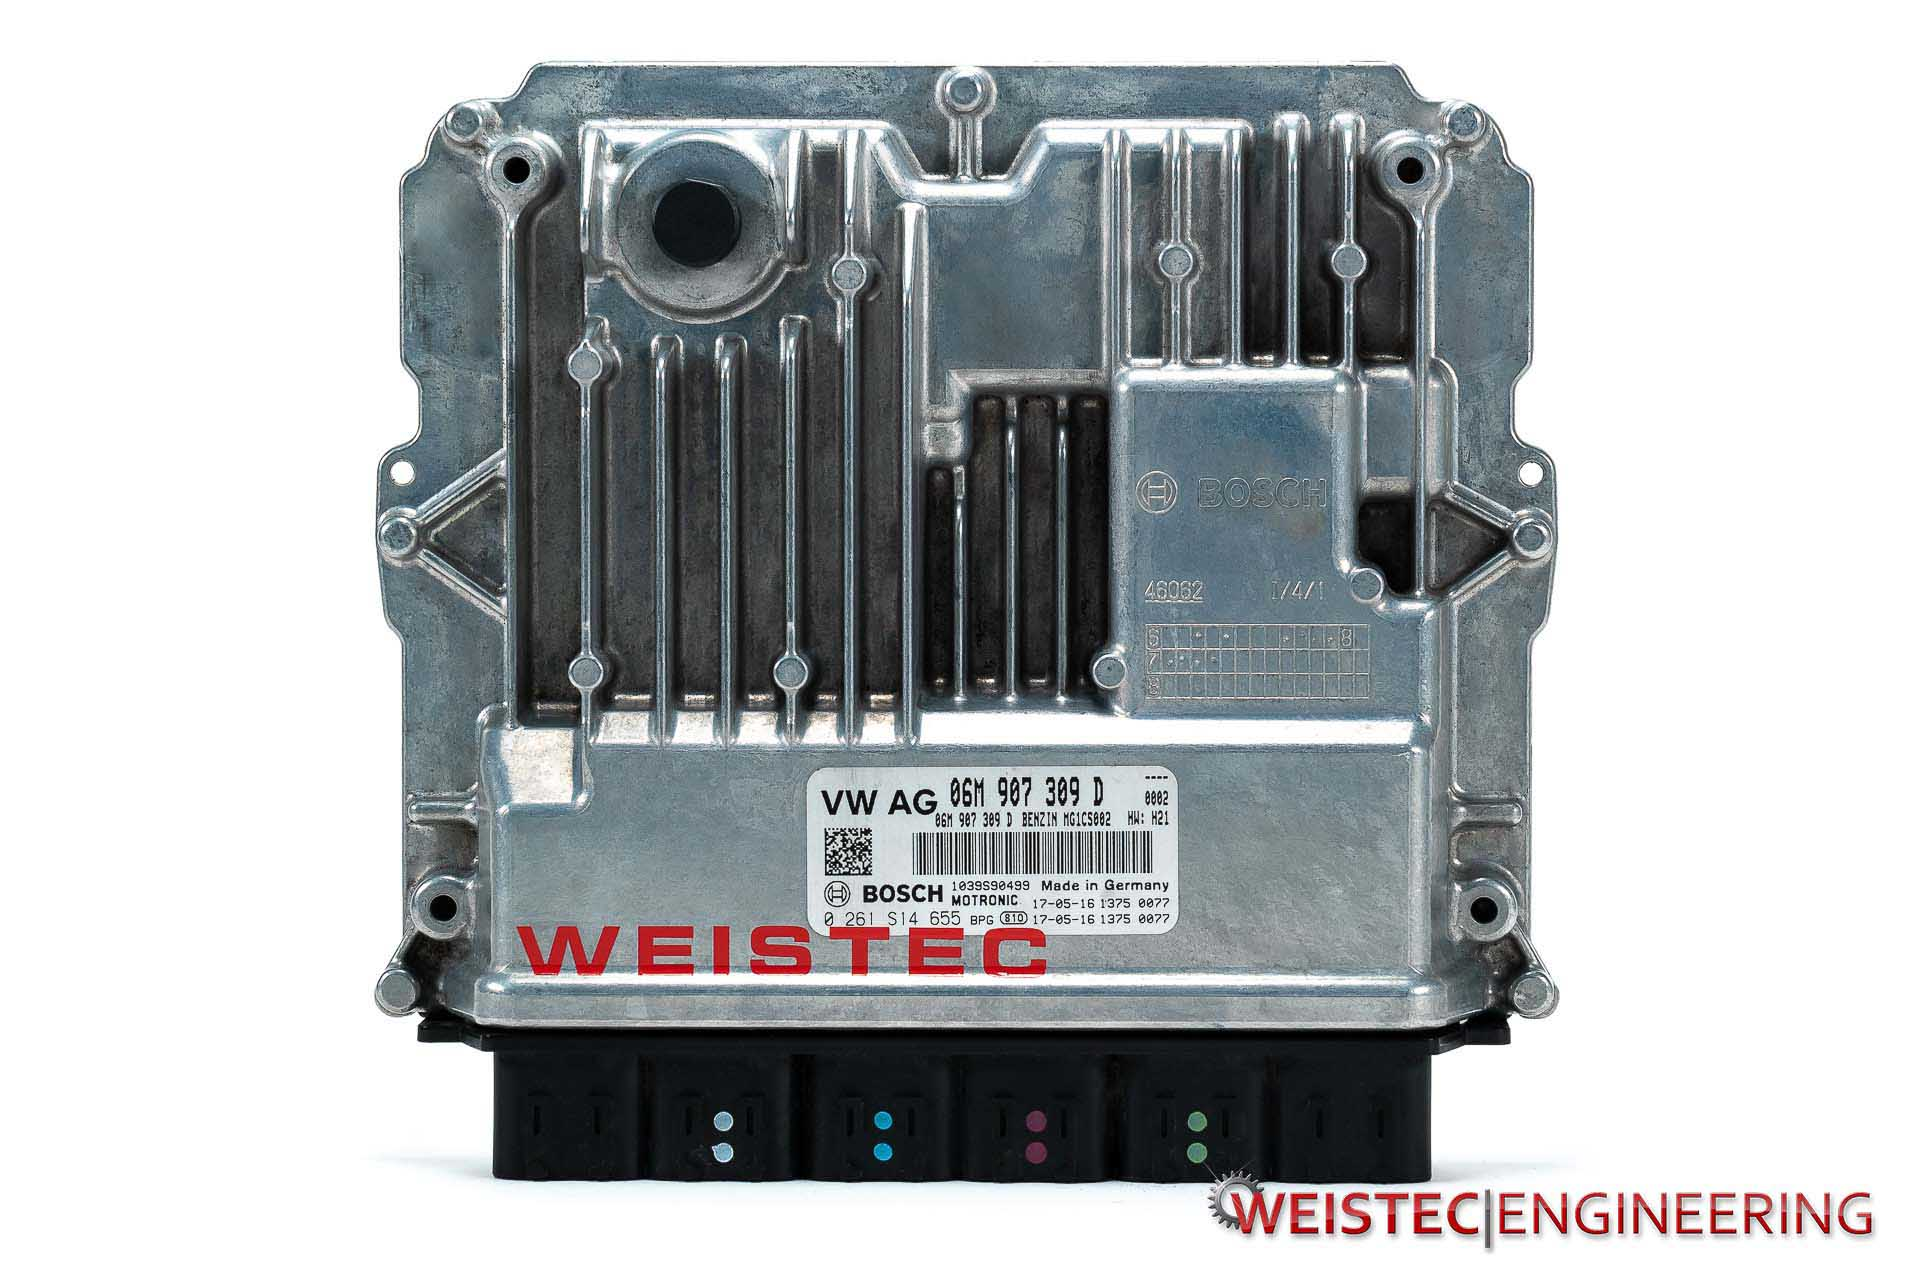 Introducing the Weistec Audi B9 S4 ECU Flash